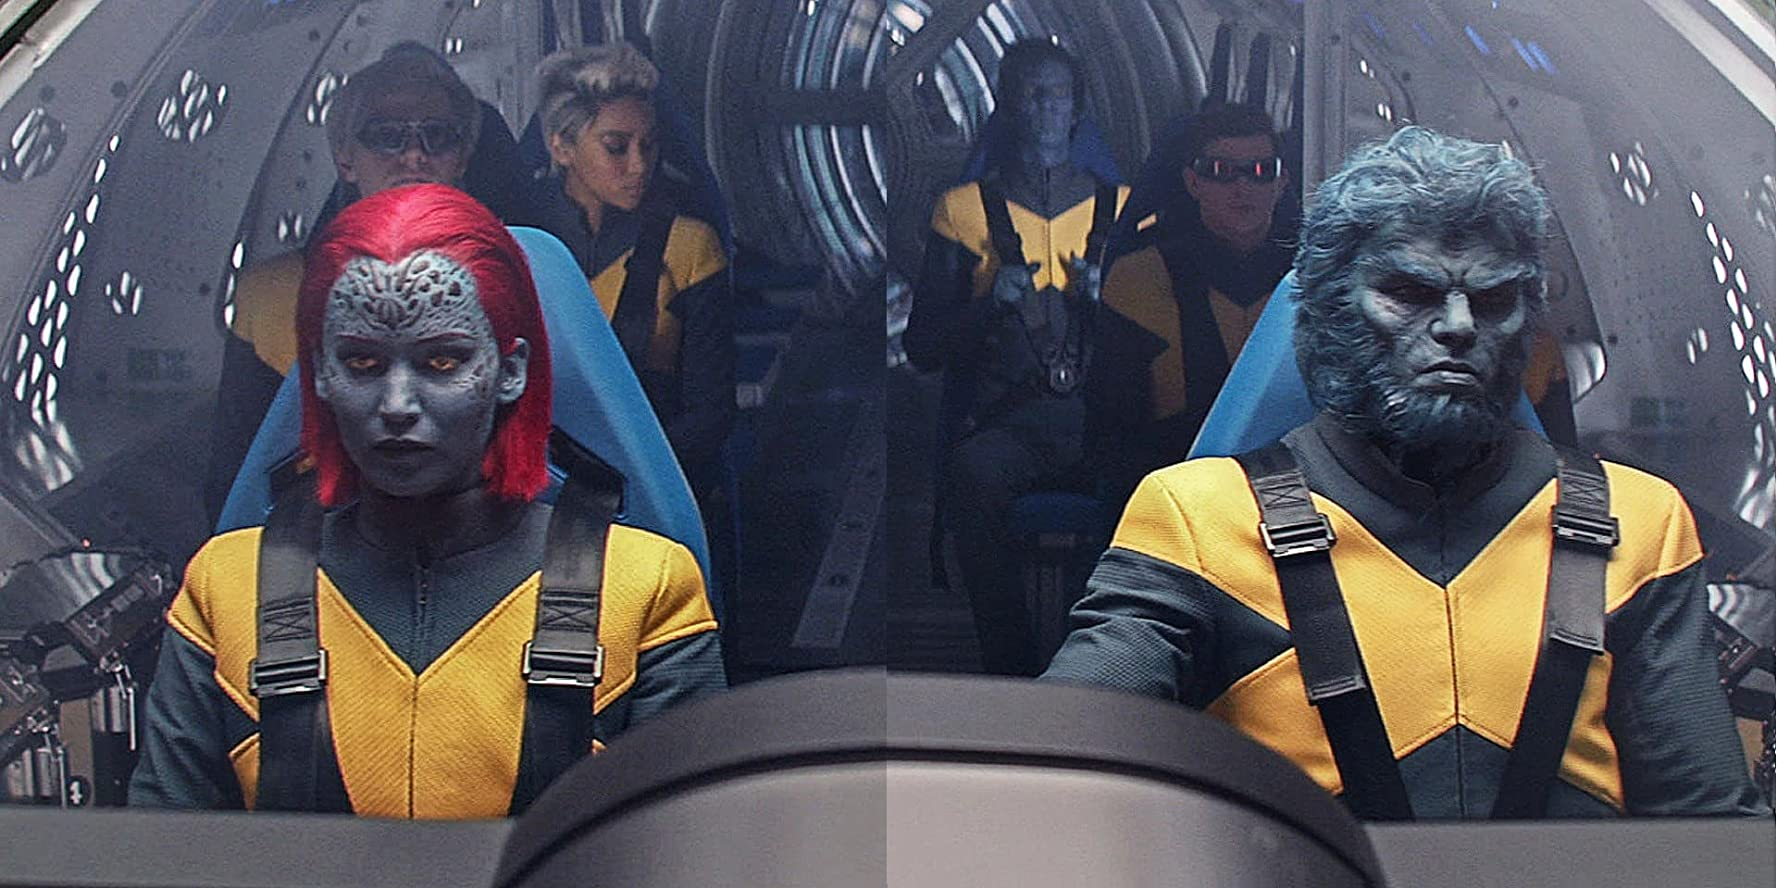 Nicholas Hoult, Evan Peters, Jennifer Lawrence, Kodi Smit-McPhee, Alexandra Shipp, and Tye Sheridan in Dark Phoenix (2019)